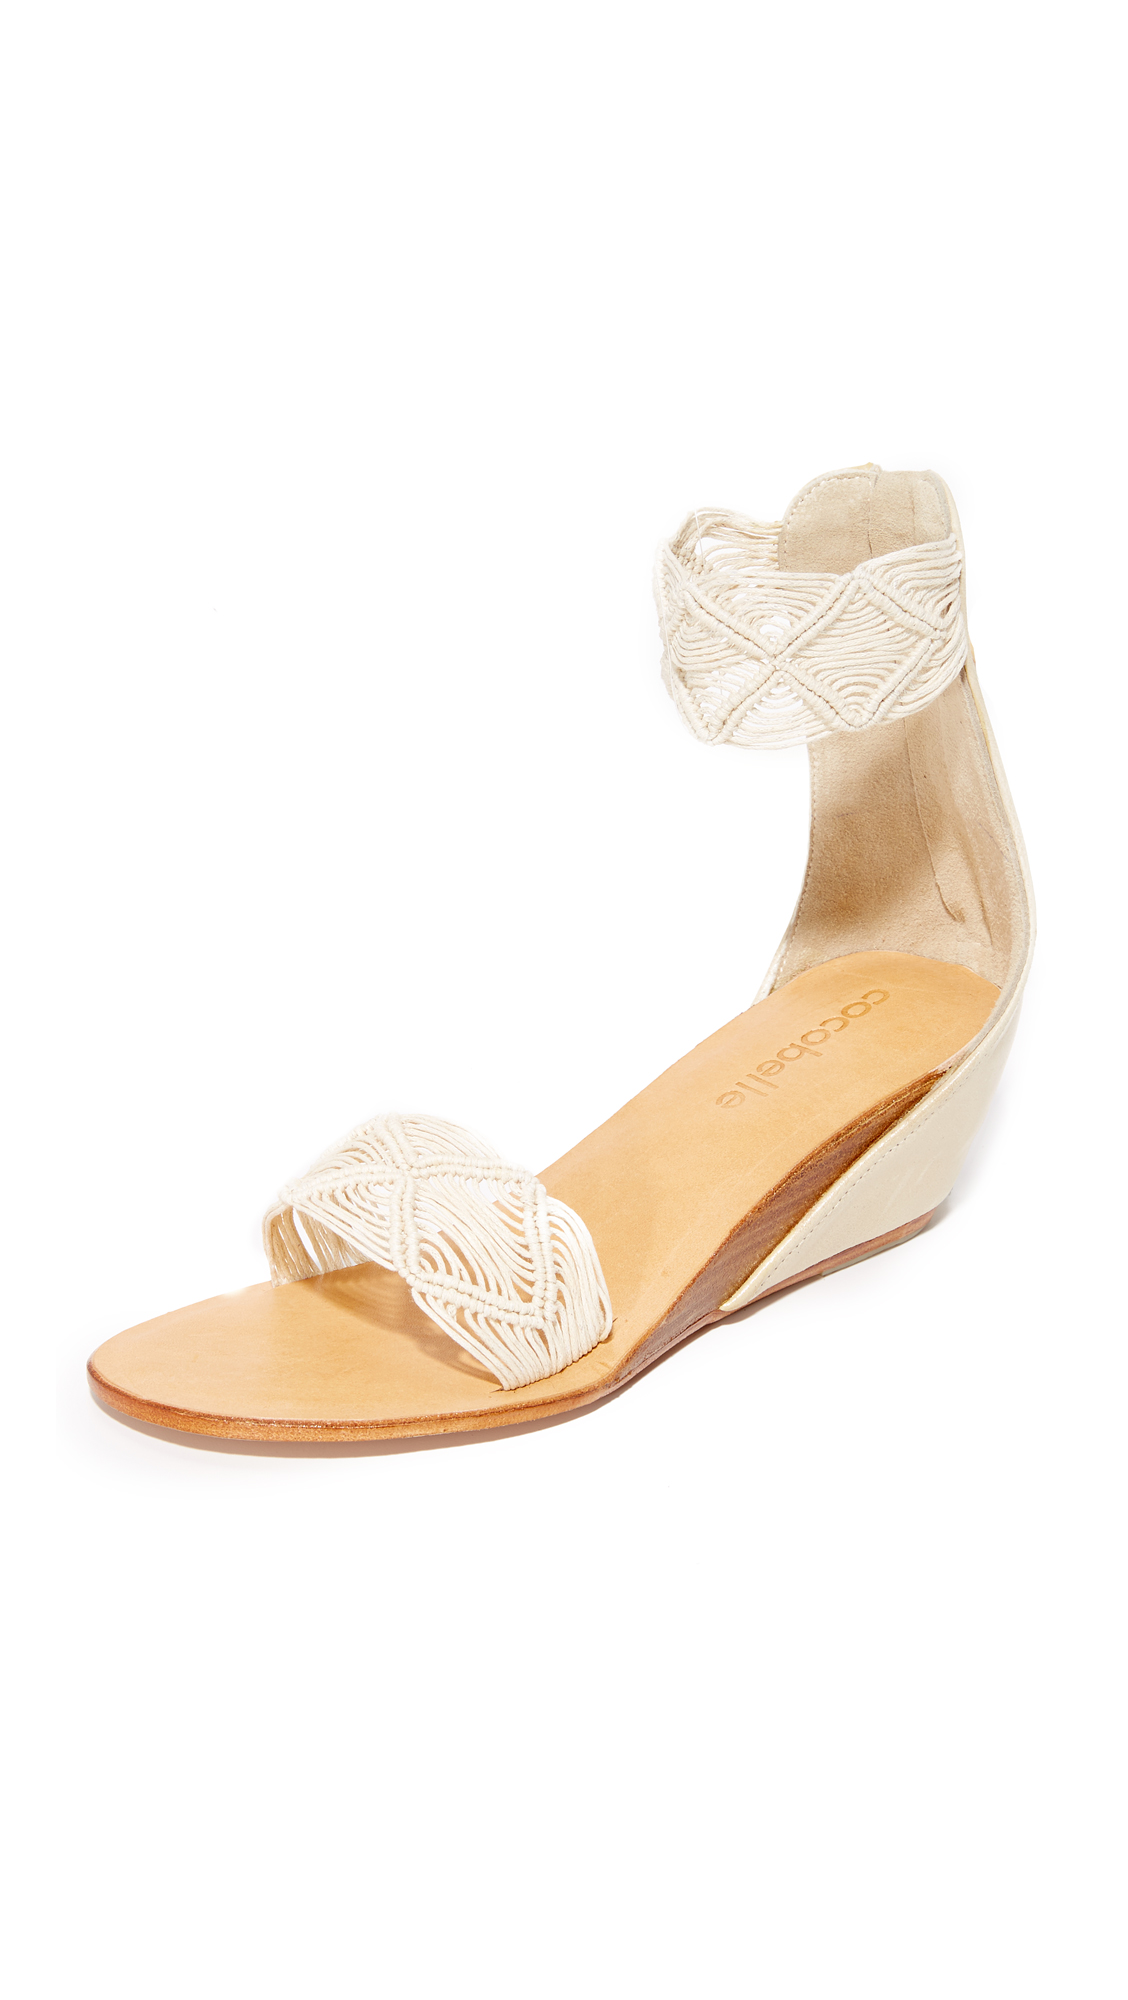 Cocobelle Lilly Wedge Sandals - Ivory at Shopbop